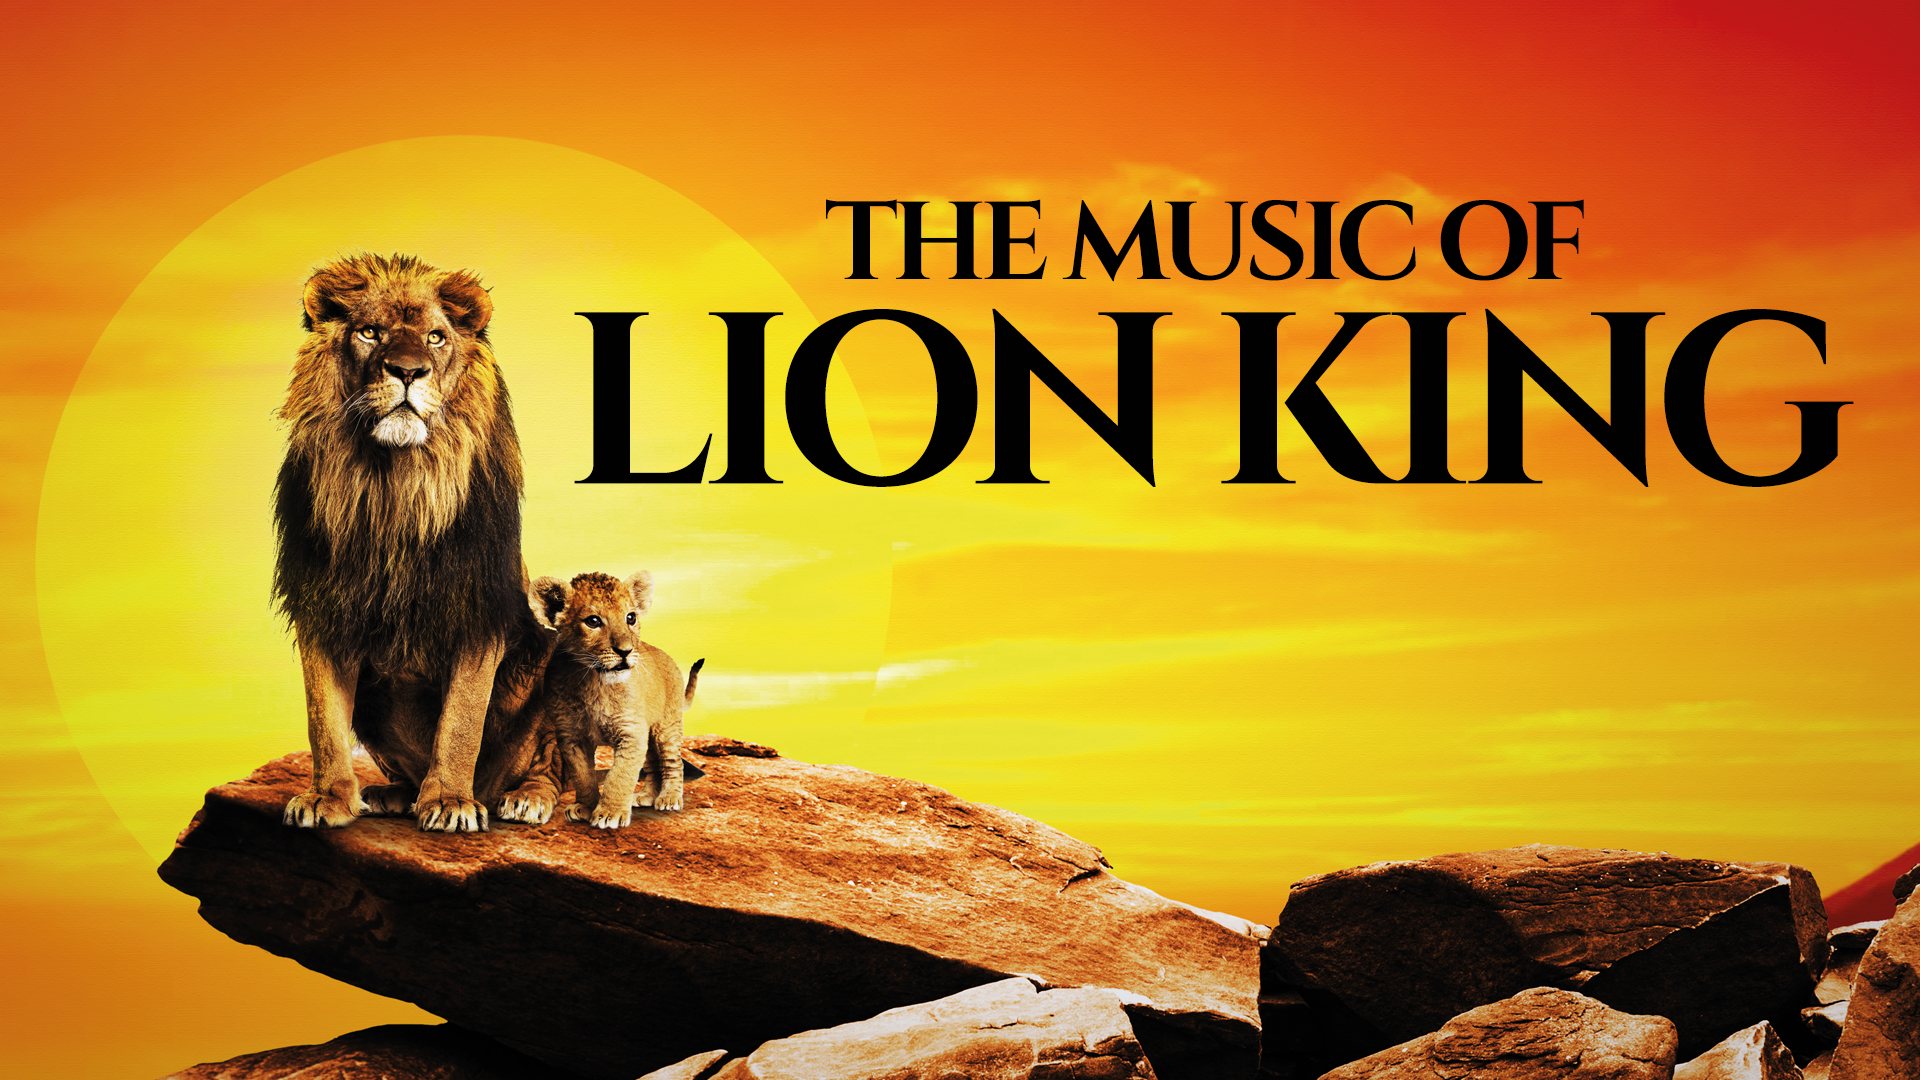 LION KING GALLAKONCERT